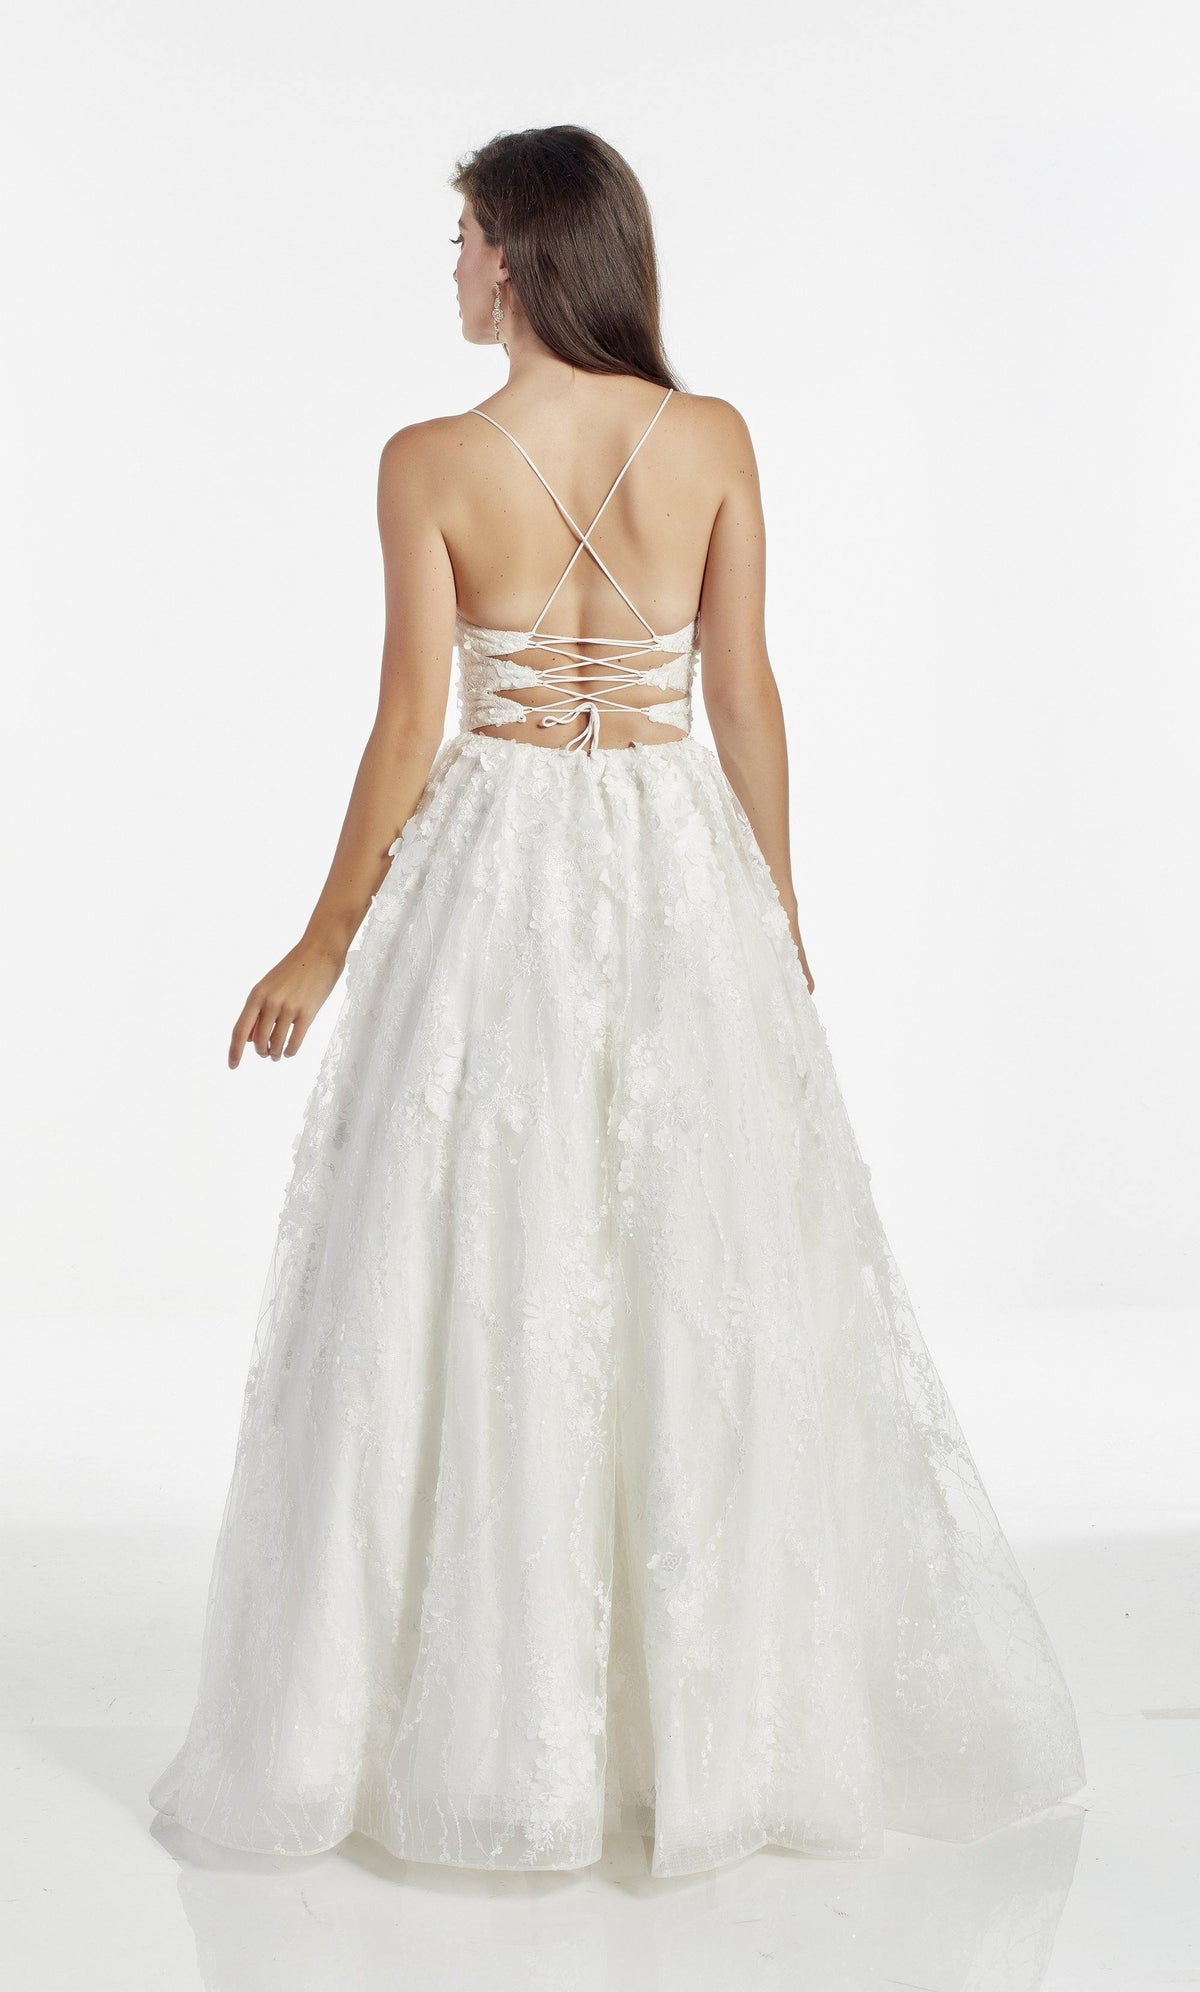 Diamond White 3D lace, glitter and stone embellished ballgown with a strappy back and train